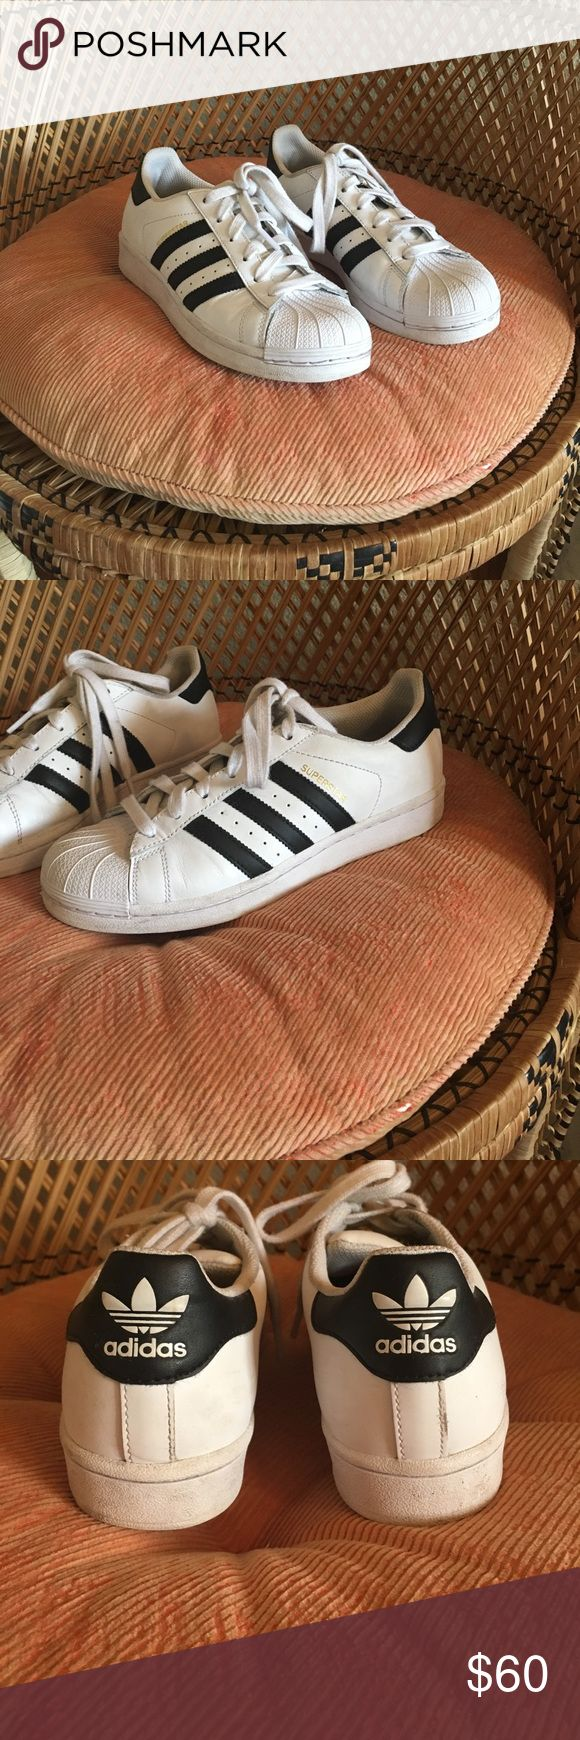 Adidas Classic Superstar Barely worn like new Adidas Superstar tennis shoes! I have super small feet so these are a child's size 5 which translates to a women's 7. I'm a 6.5 so these were a little too big, I'm sad to part with them 😔 adidas Shoes Sneakers